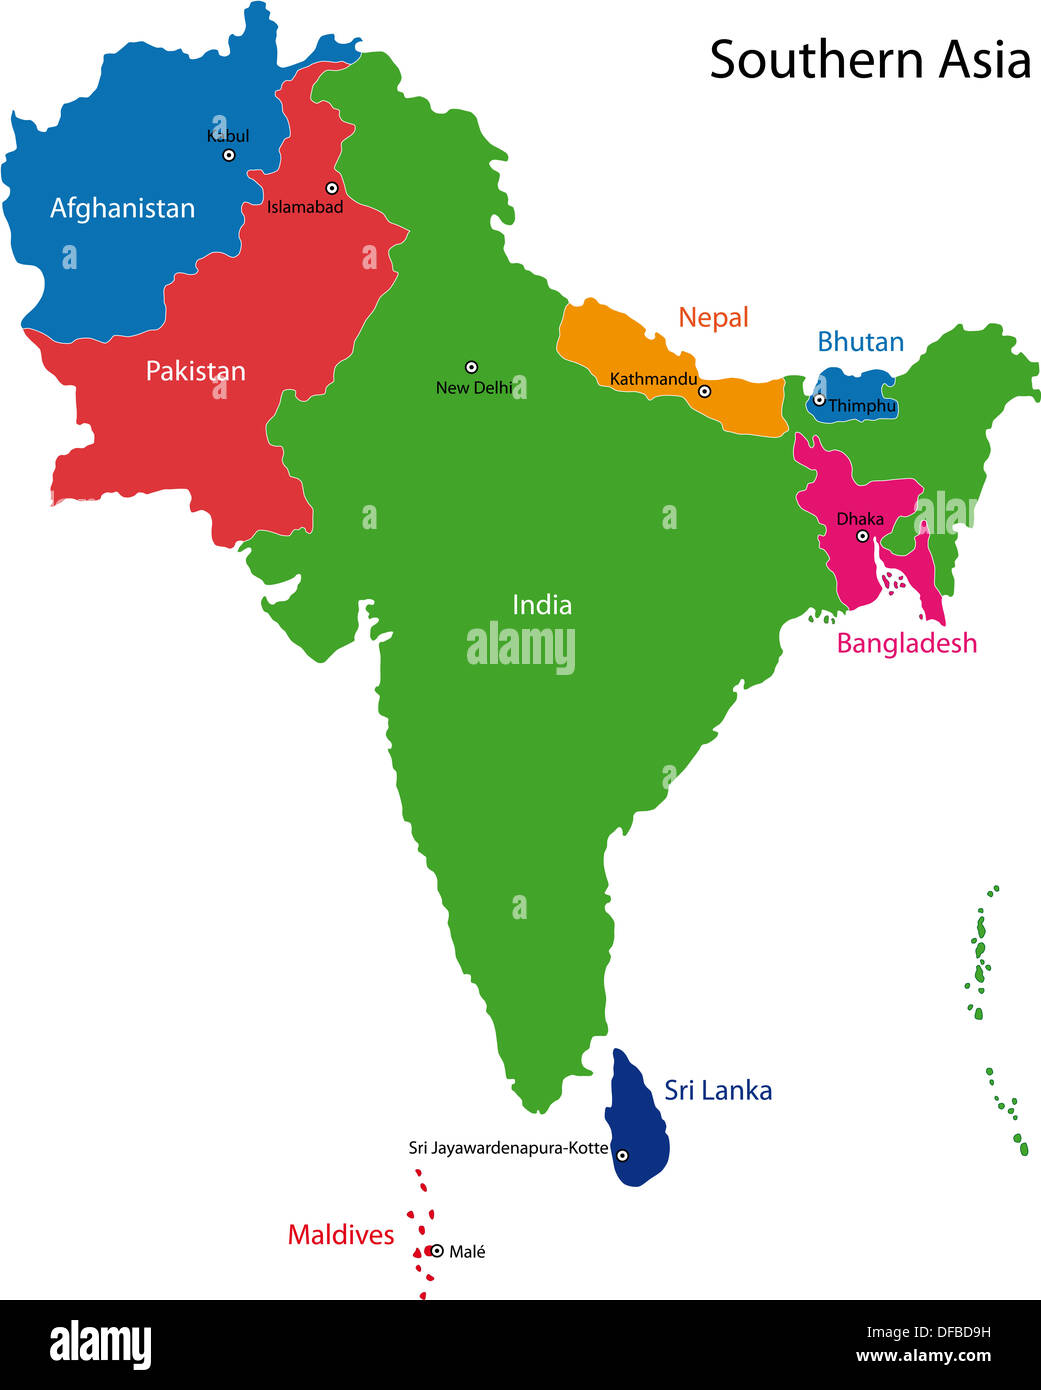 Map Of Asia India.India Bangladesh Map Stock Photos India Bangladesh Map Stock